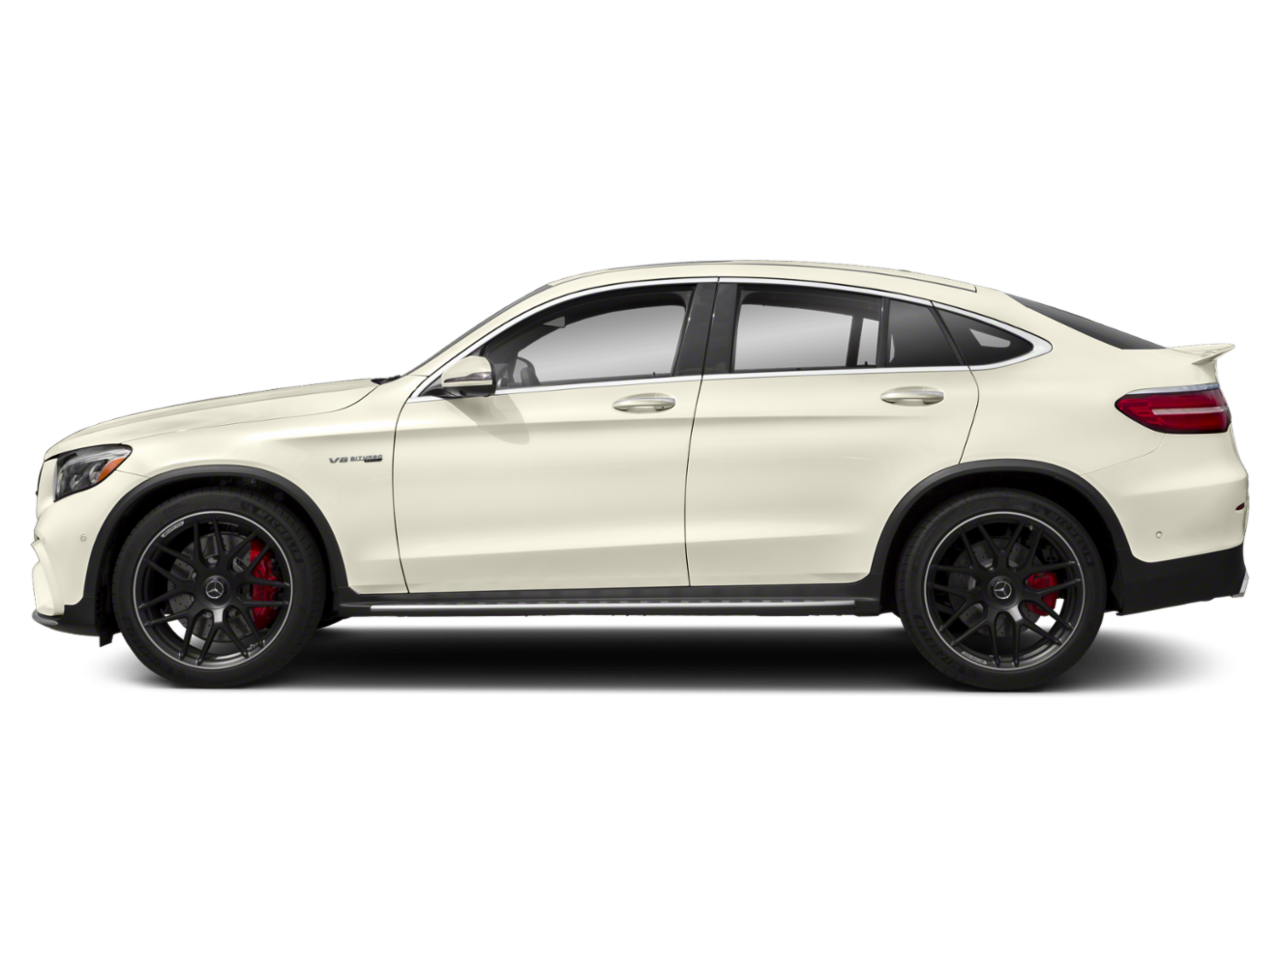 2019 Mercedes-Benz AMG GLC 63 4MATIC+ Coupe